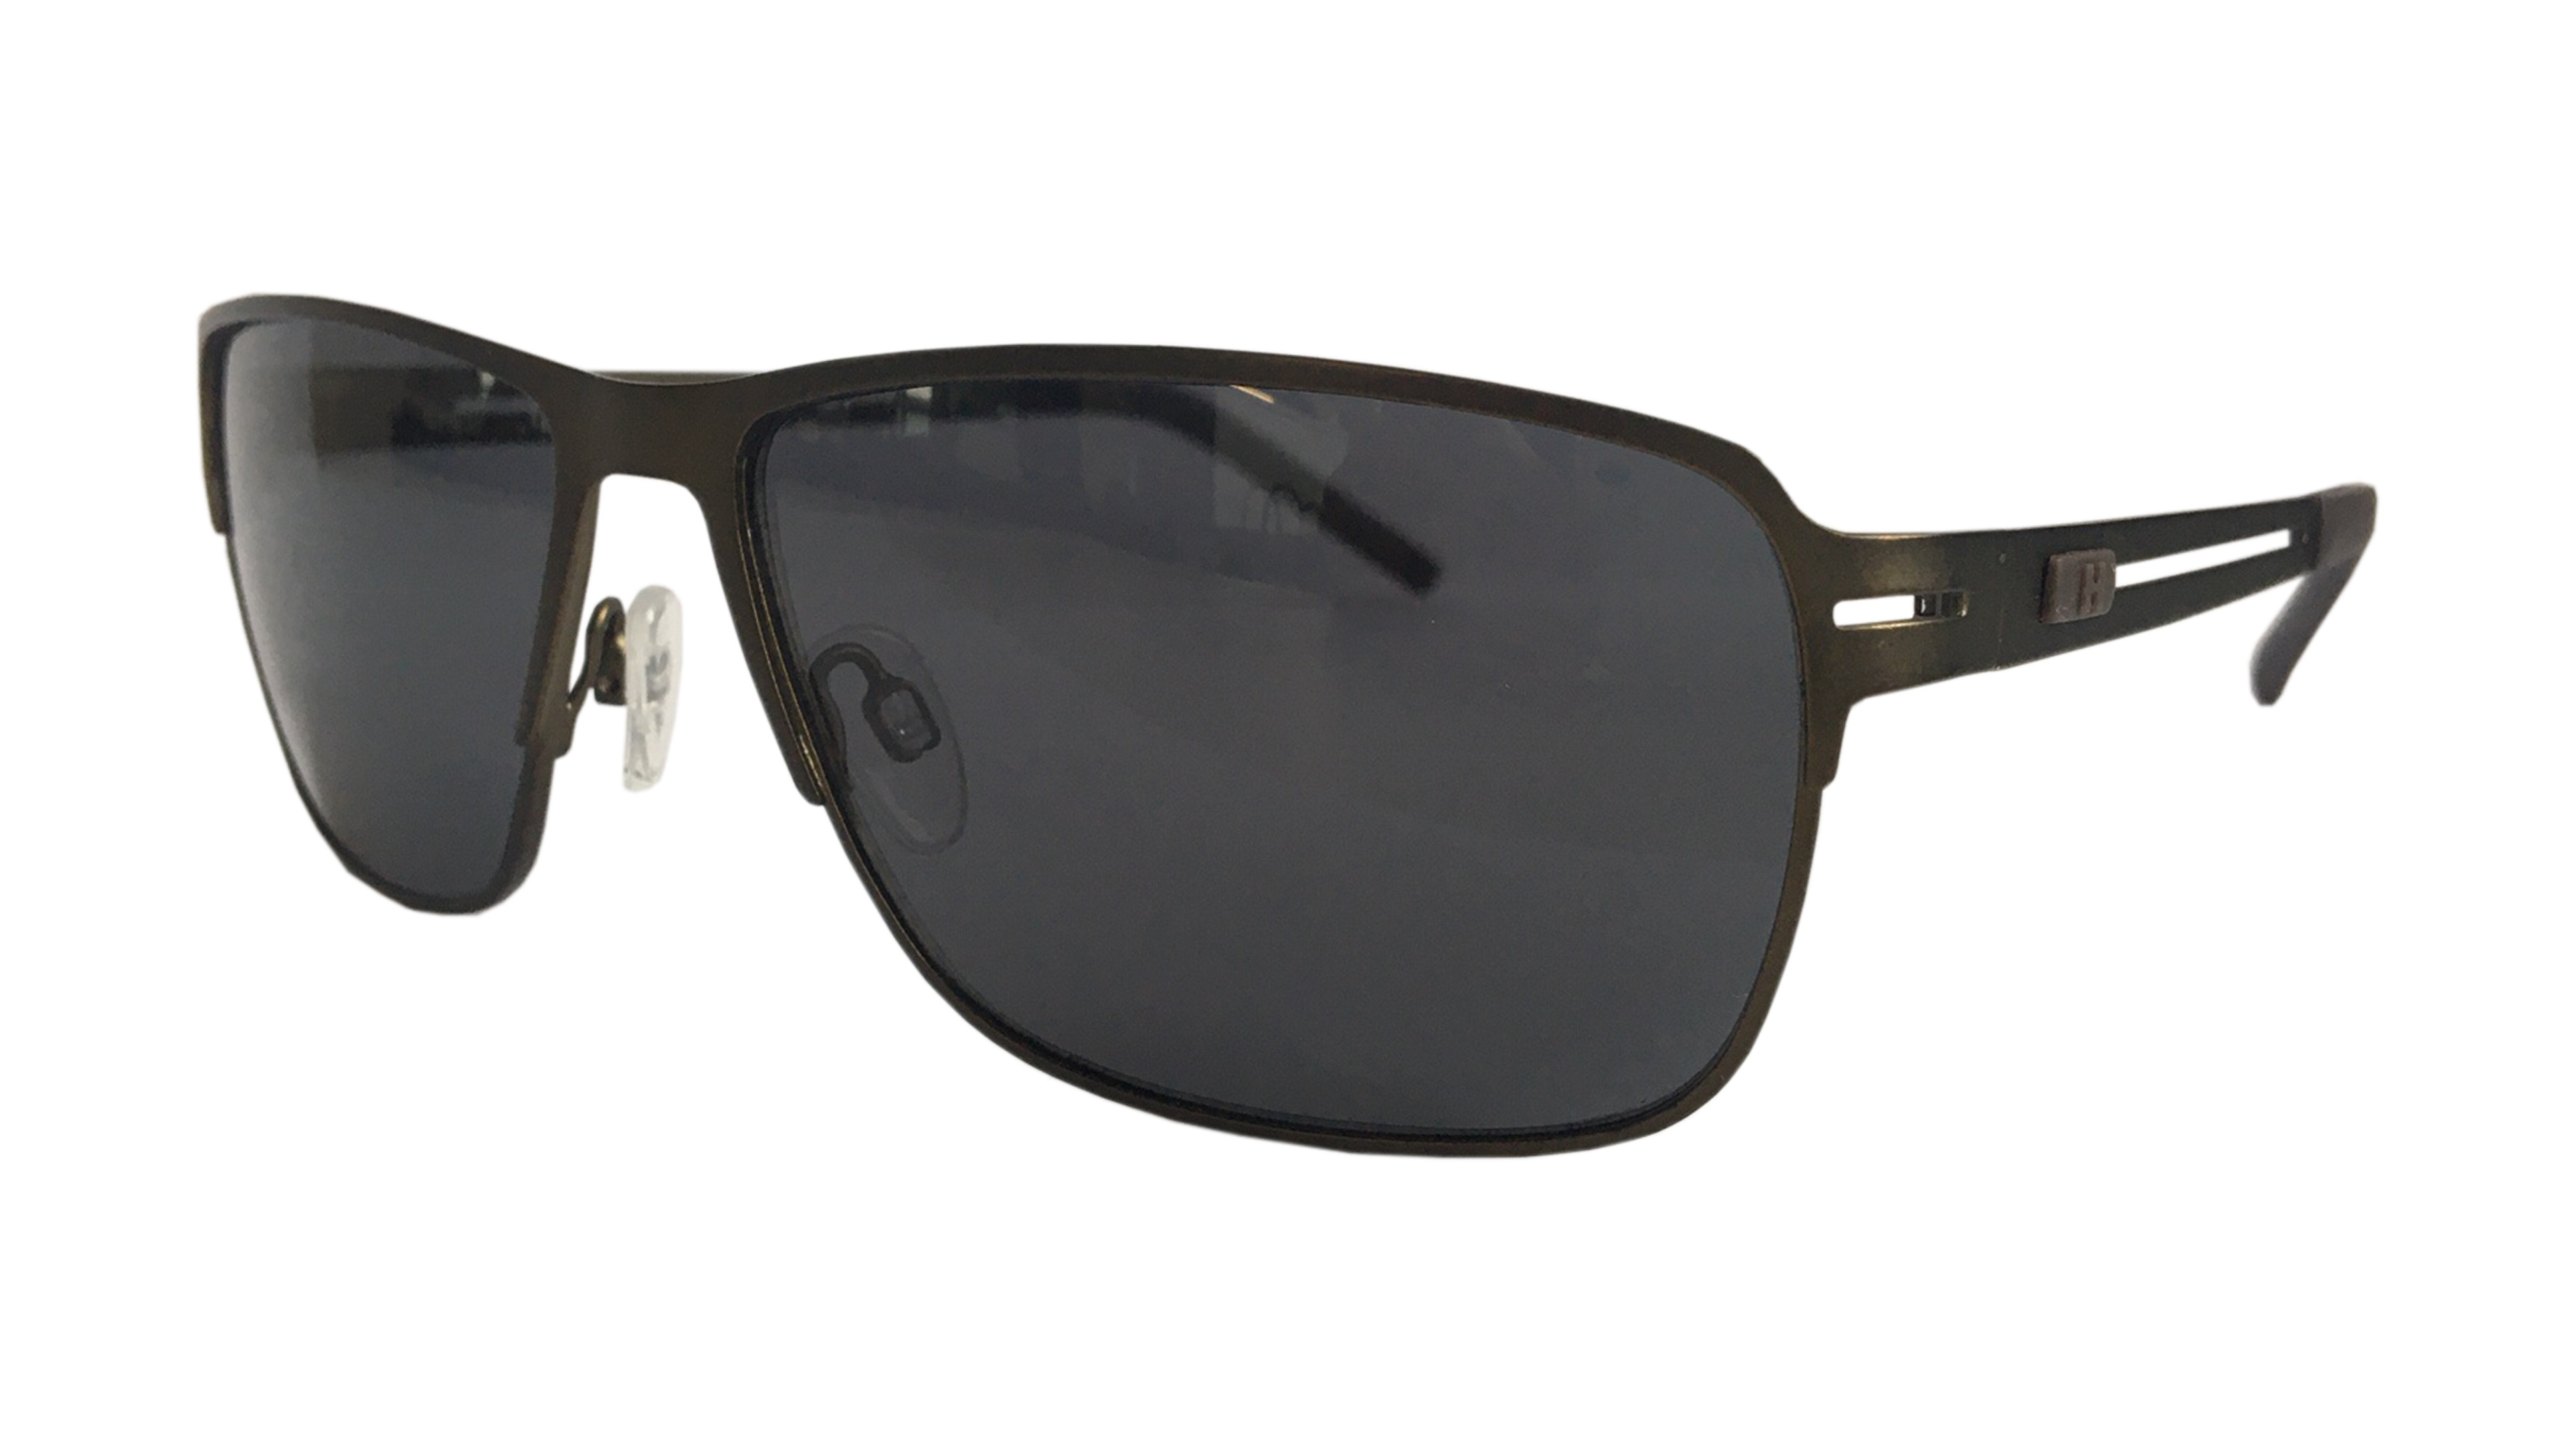 4048347866565-front-ex_angle-humphreys-sonnenbrille-585143-40